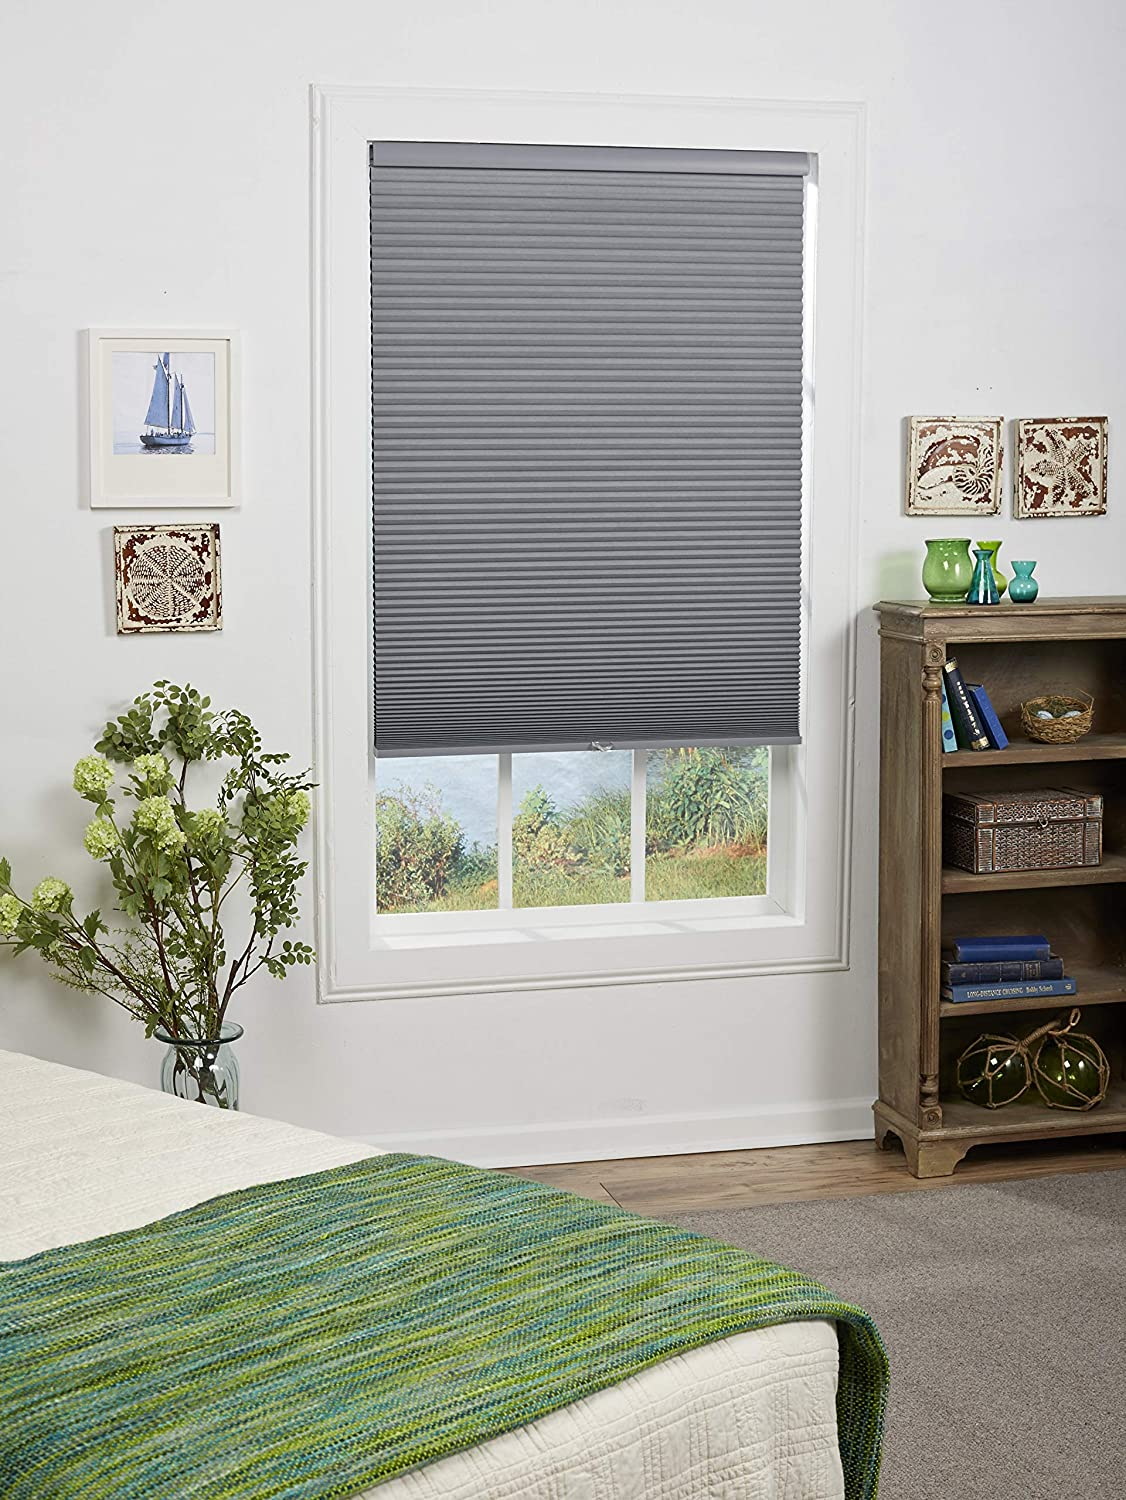 29W x 64H Inches Anchor Gray DEZ Furnishings QEGRWT290640 Cordless Blackout Cellular Shade